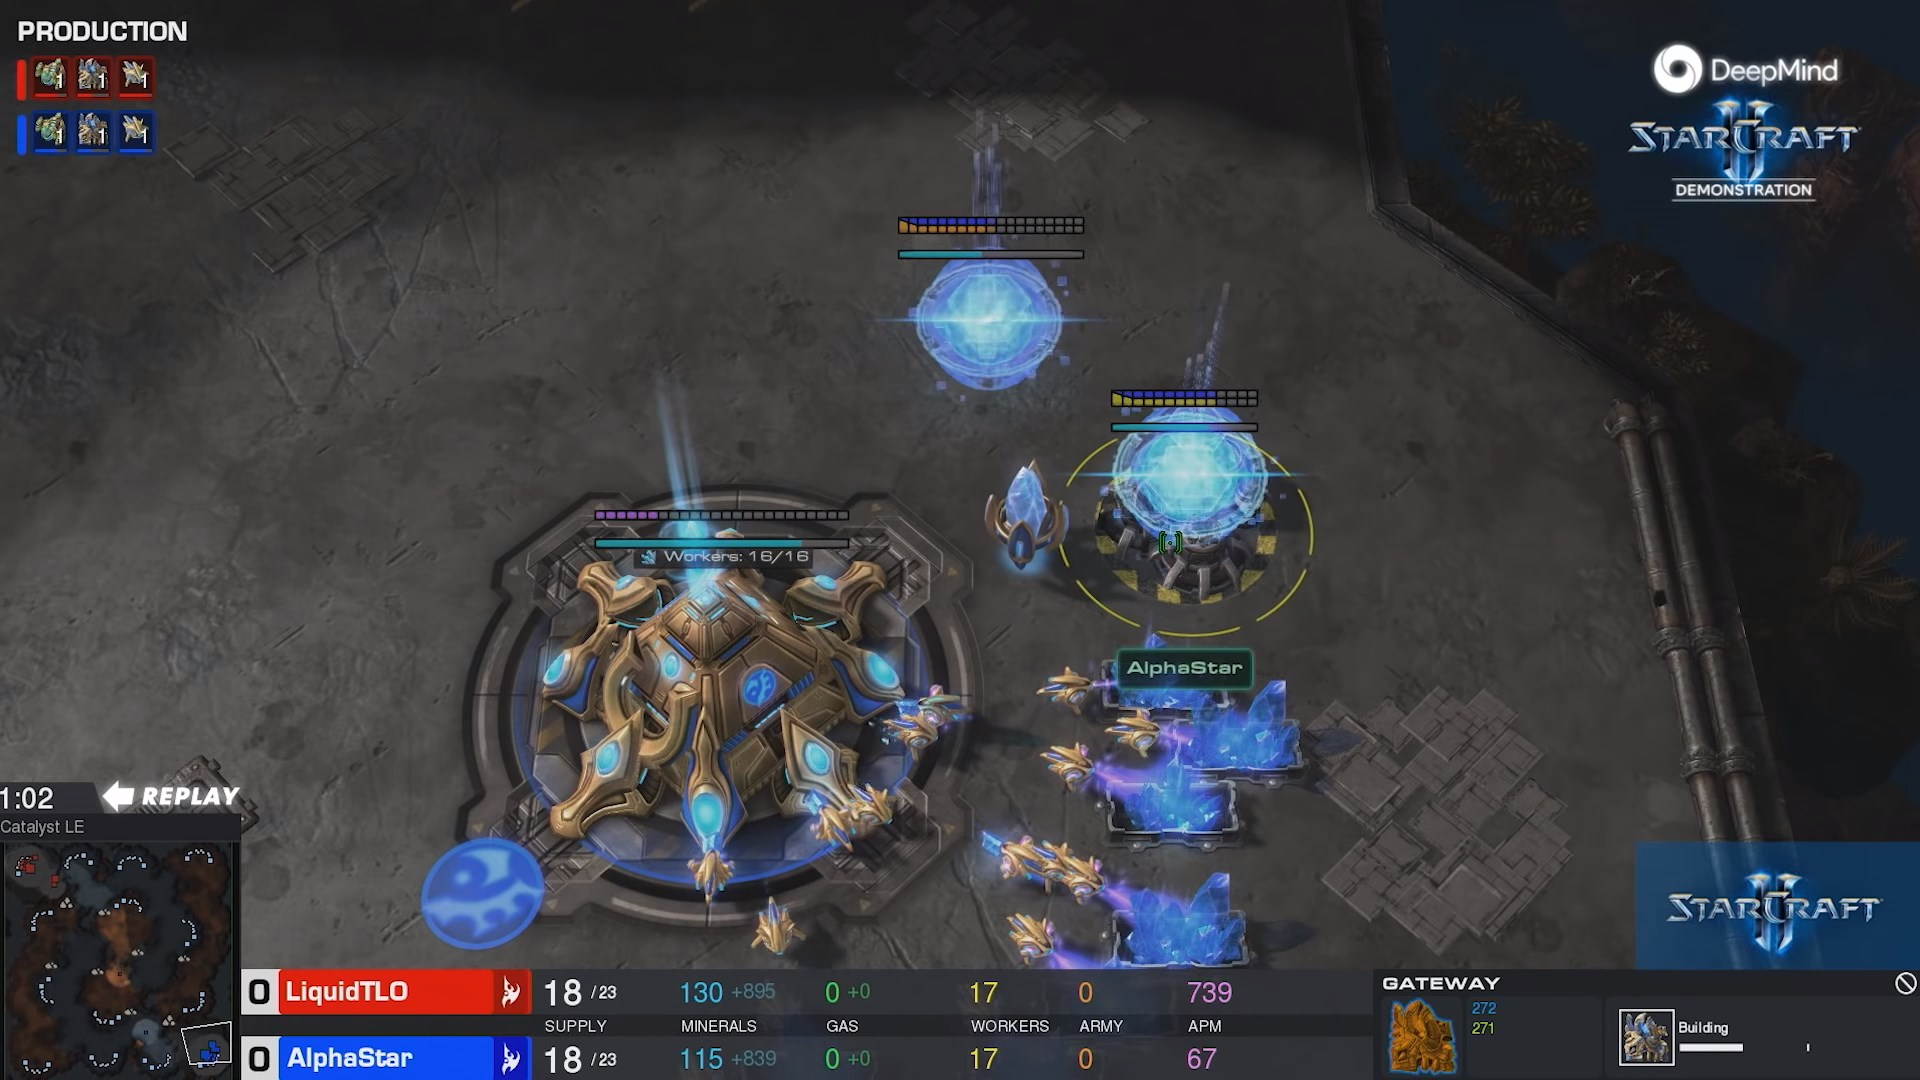 StarCraft 2 Players, Meet Your Google AI Overlords